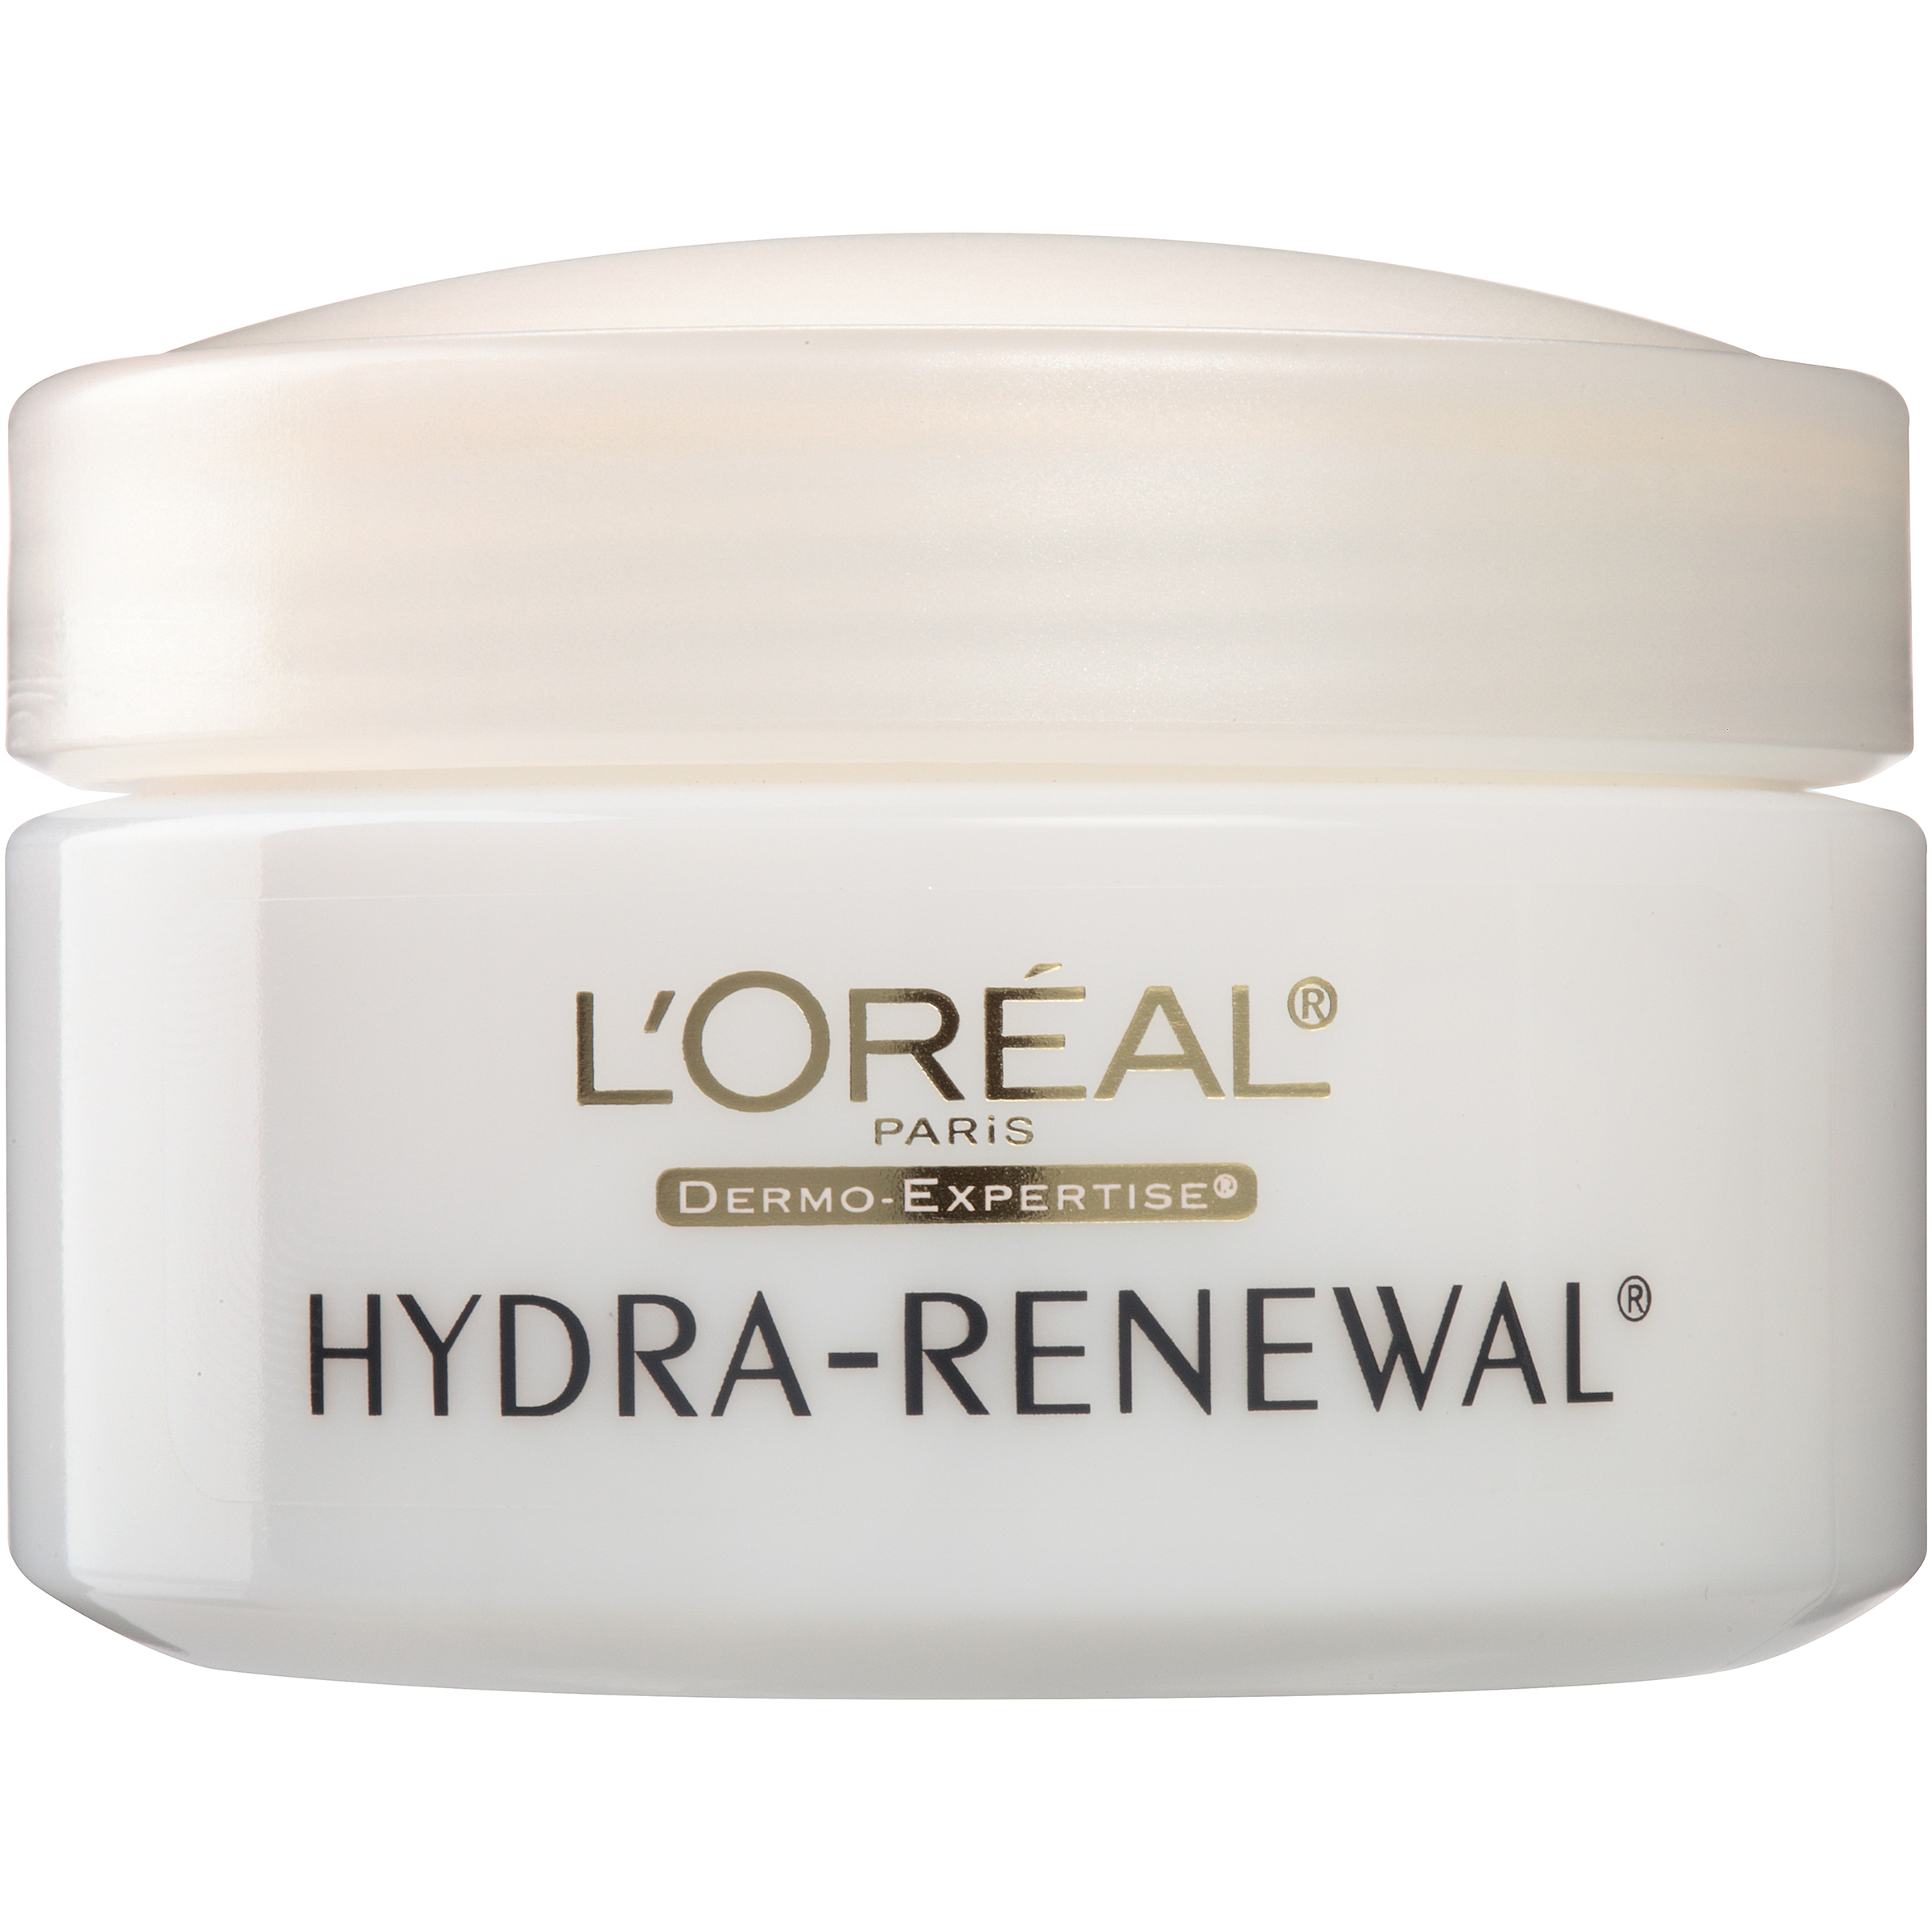 LOreal Dermo-Expertise Hydra-Renewal Continuous Moisture Cream Dry/Sensitive Skin 1.70 oz (Pack of 2) (6 Pack) mehron E.Y.E Cream - Chestnut Brown